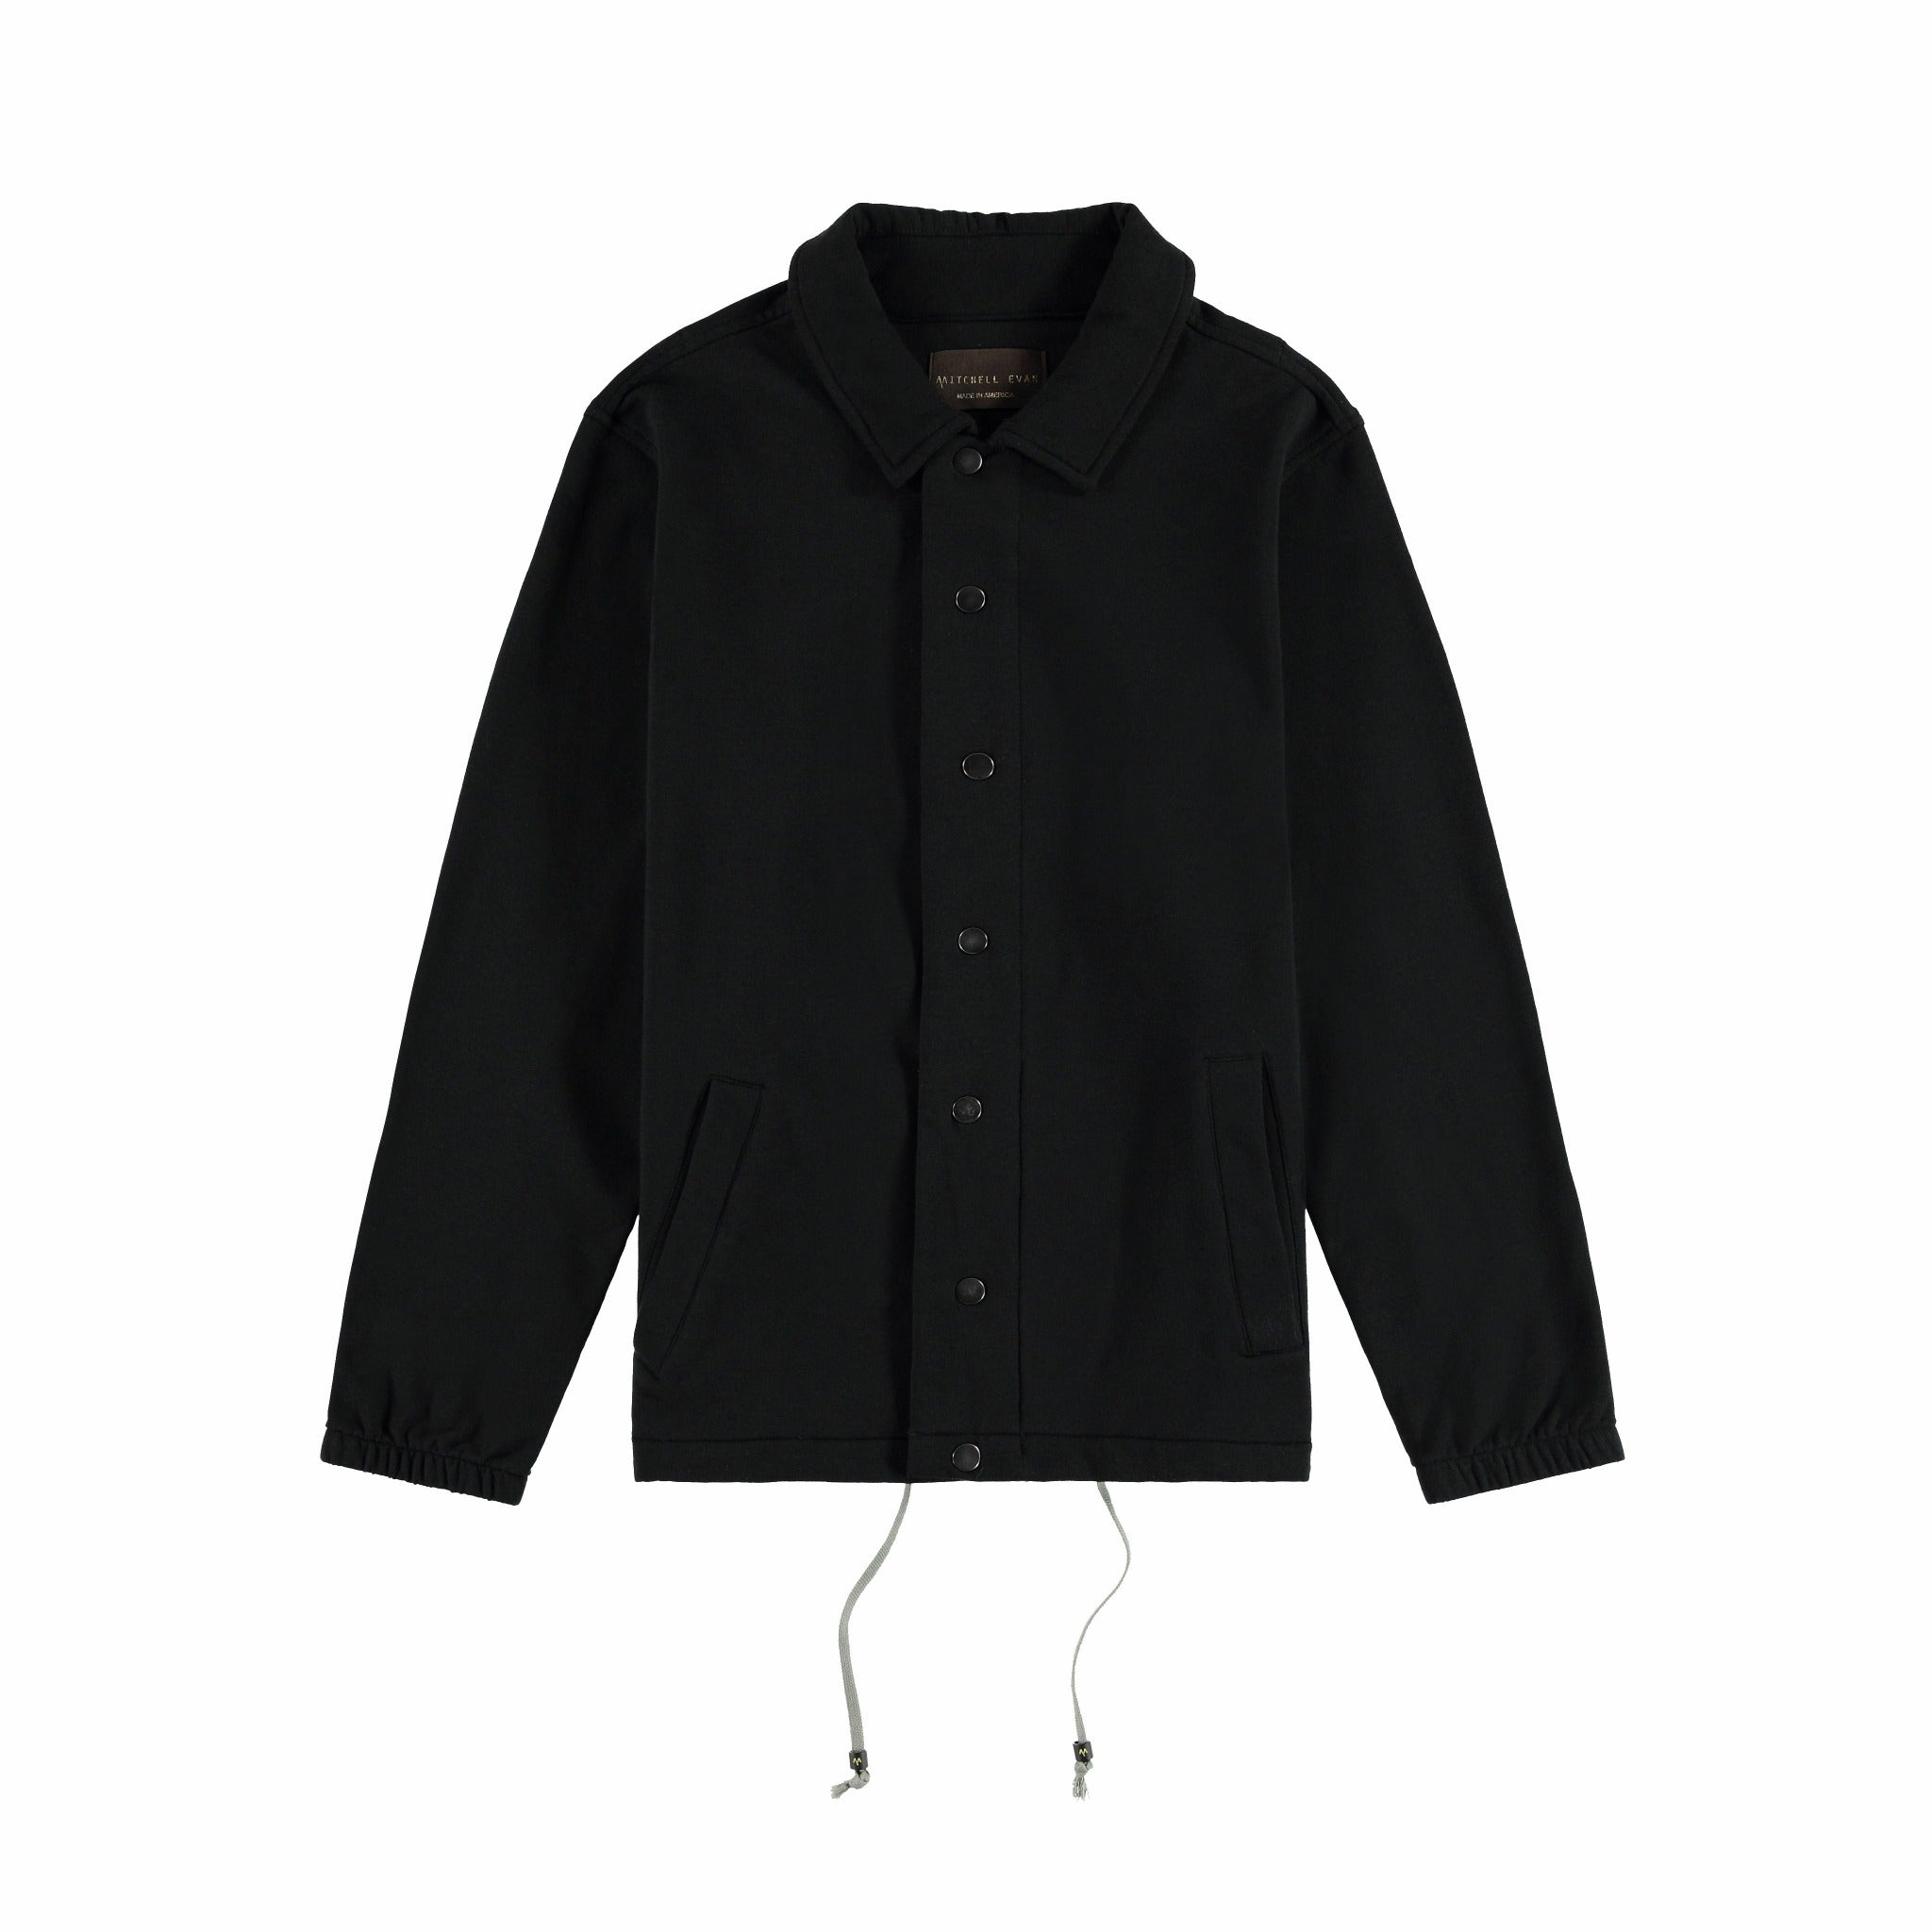 Coaches Jacket in Black - Mitchell Evan